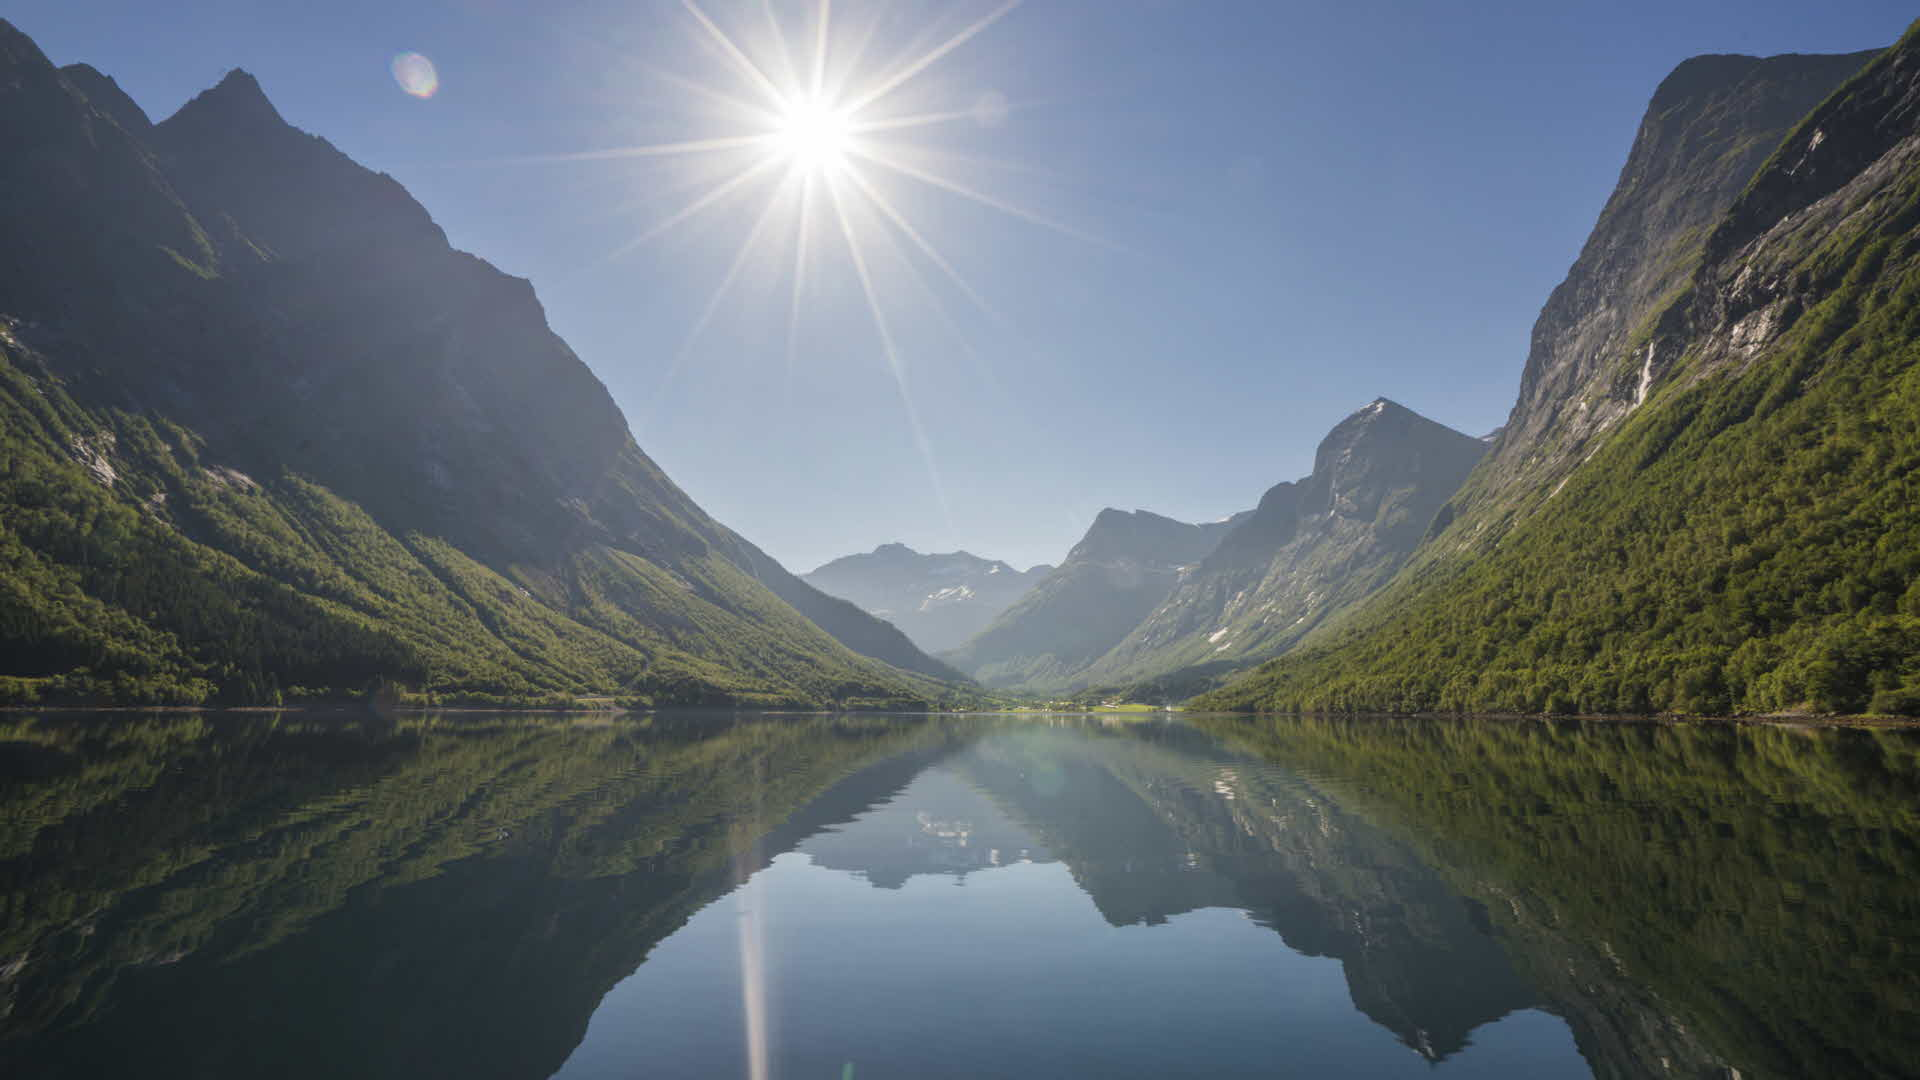 Sun flare as watching the high and dramatic peaks of the Hjorundfjord landscape is mirrored in the calm and crystal-clear sea